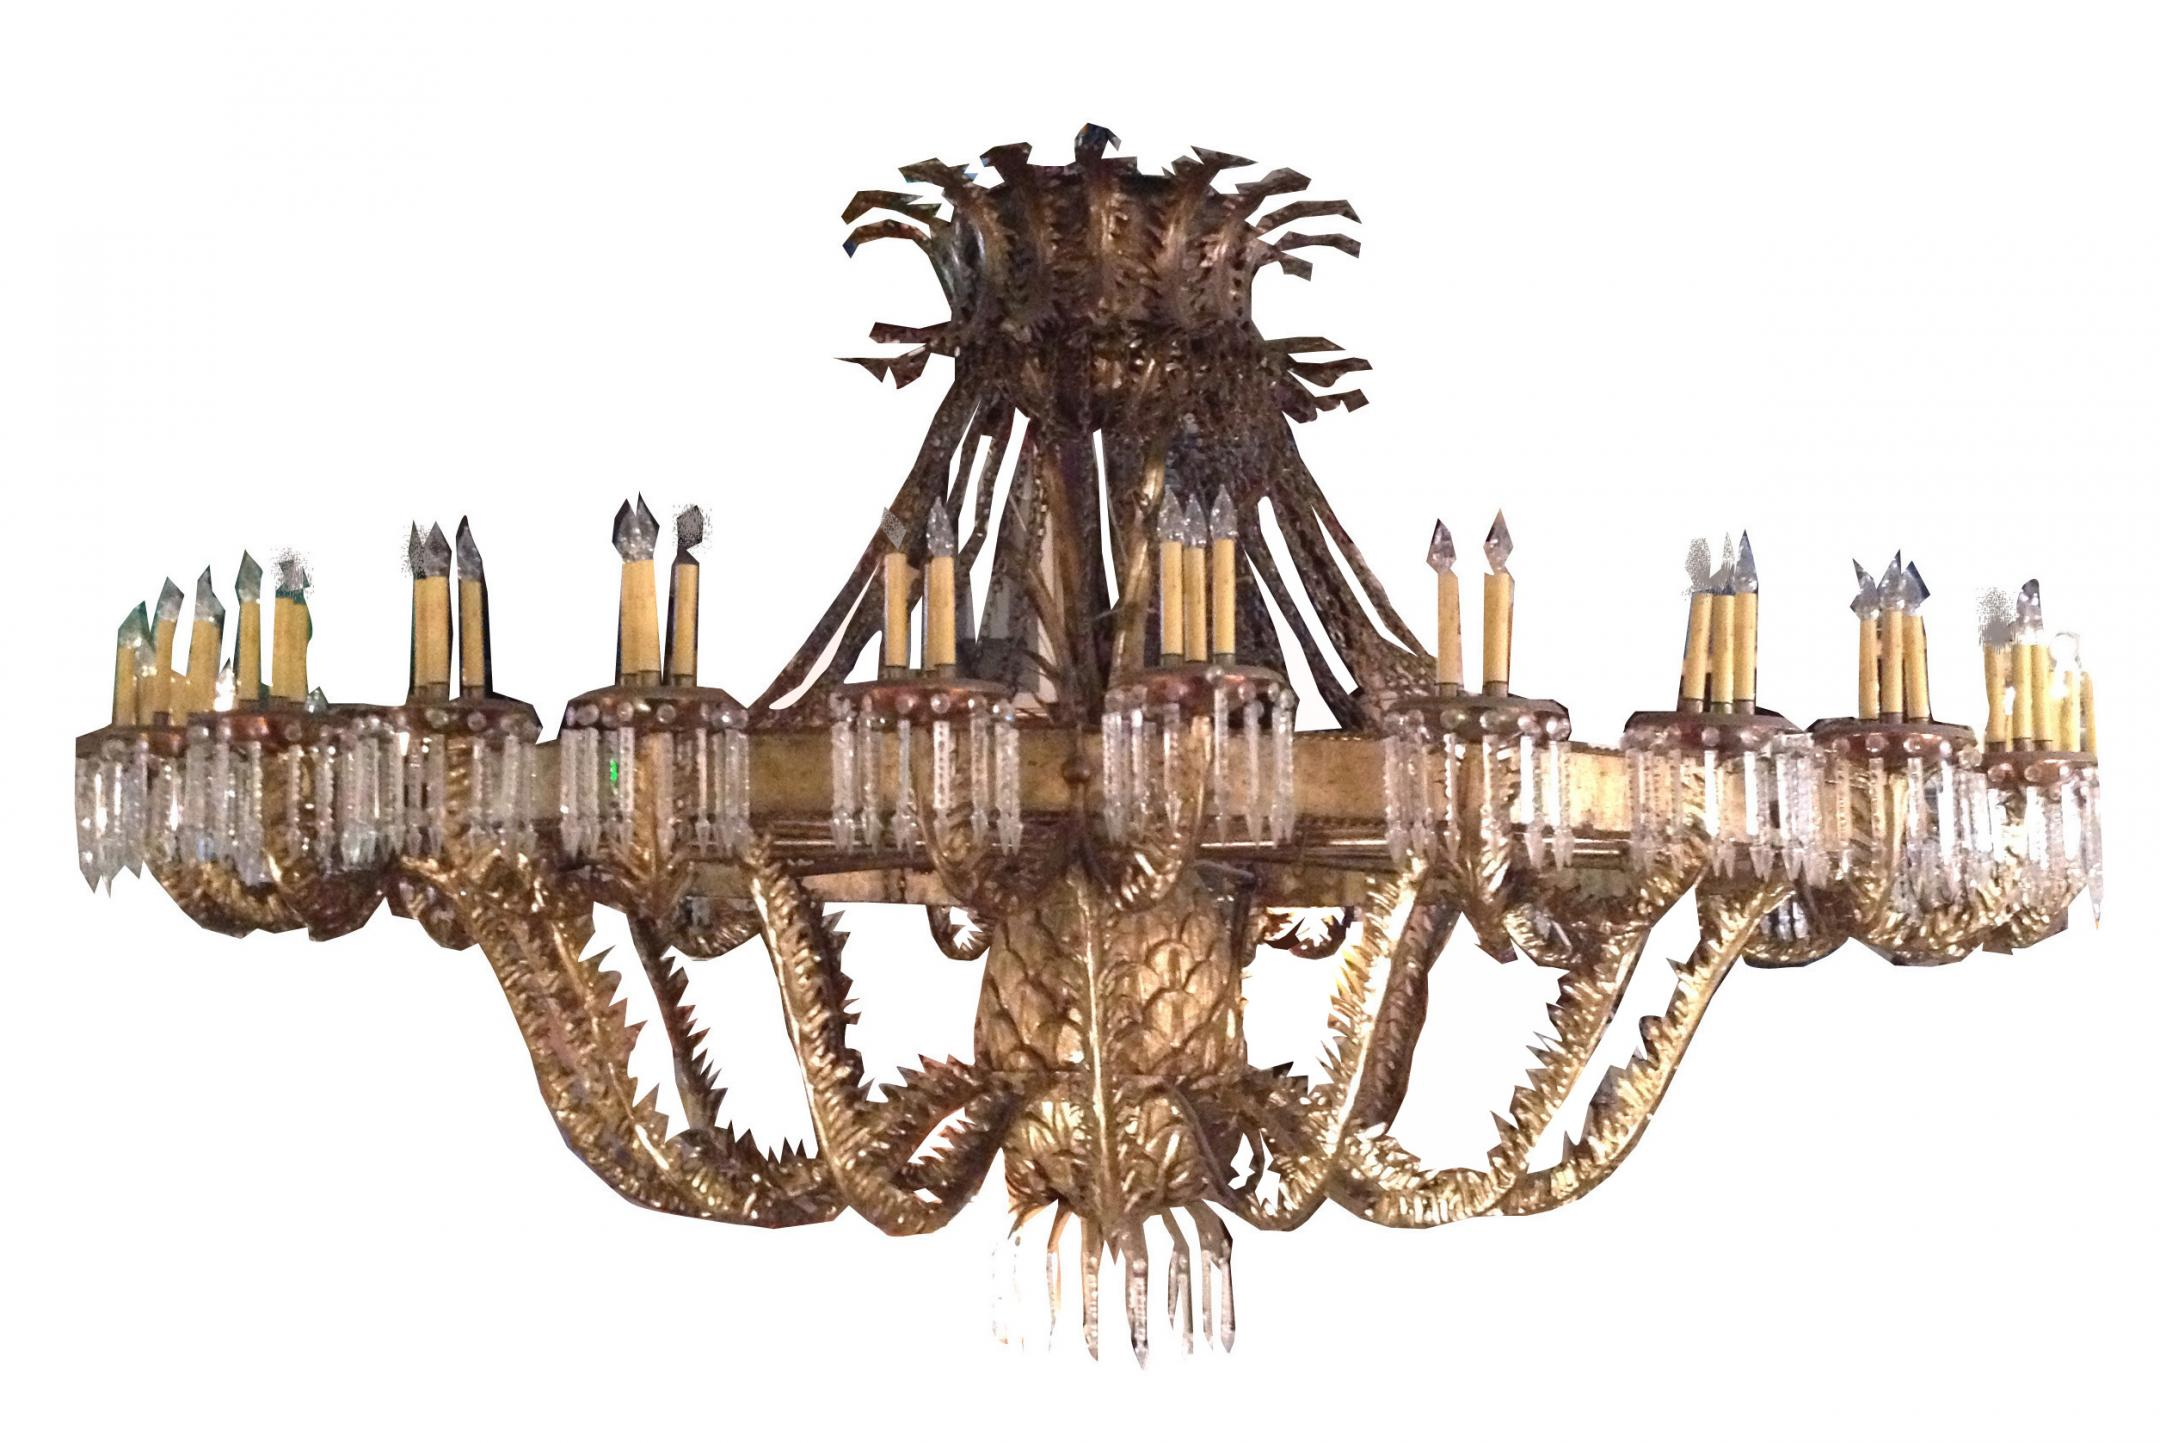 A Gilded Iron and Crystal Ballroom Chandelier Lighting